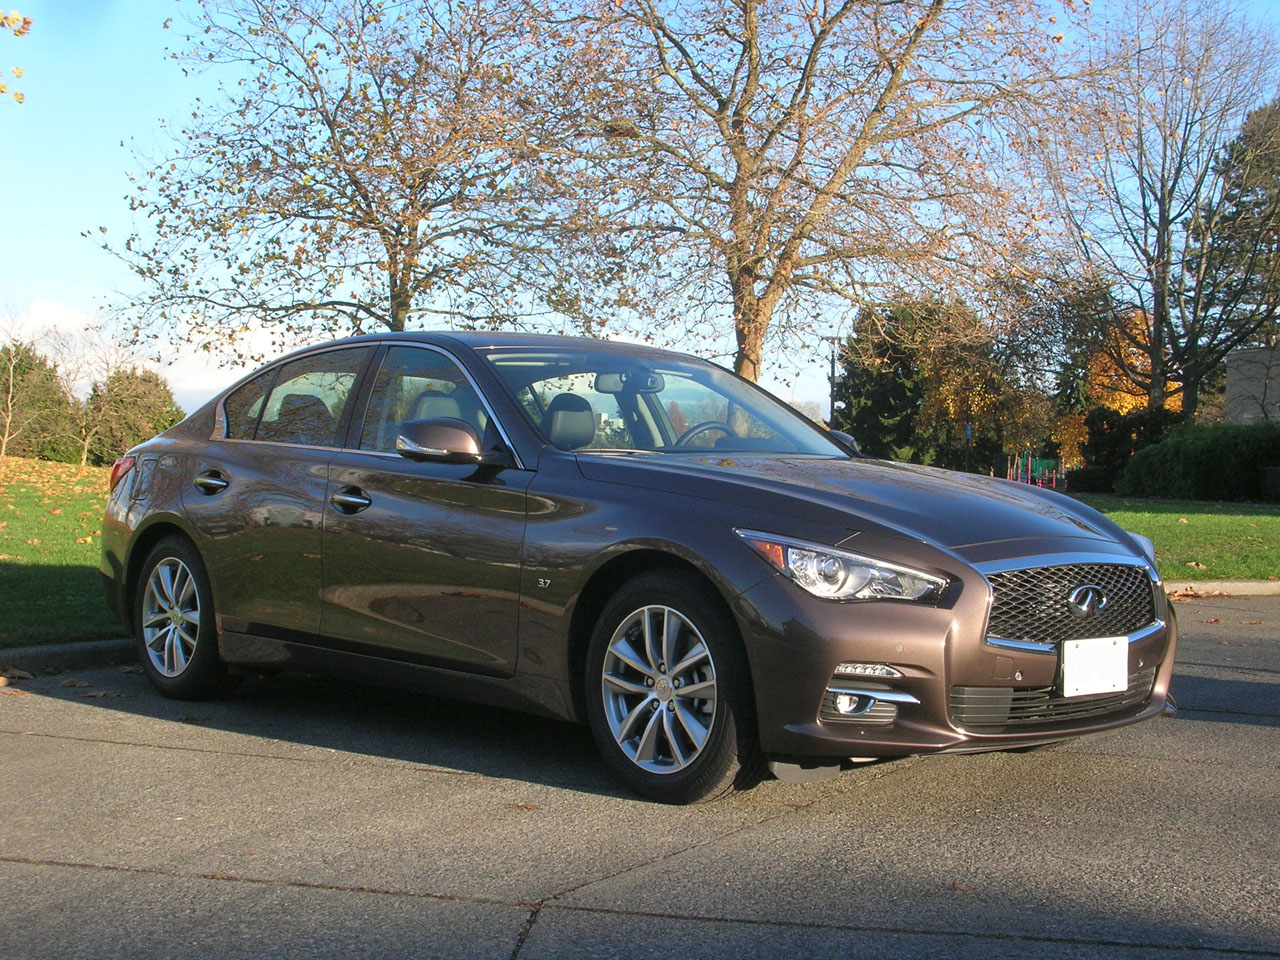 Infiniti Q AWD Premium Road Test Review CarCostCanada - Infiniti q50 invoice price